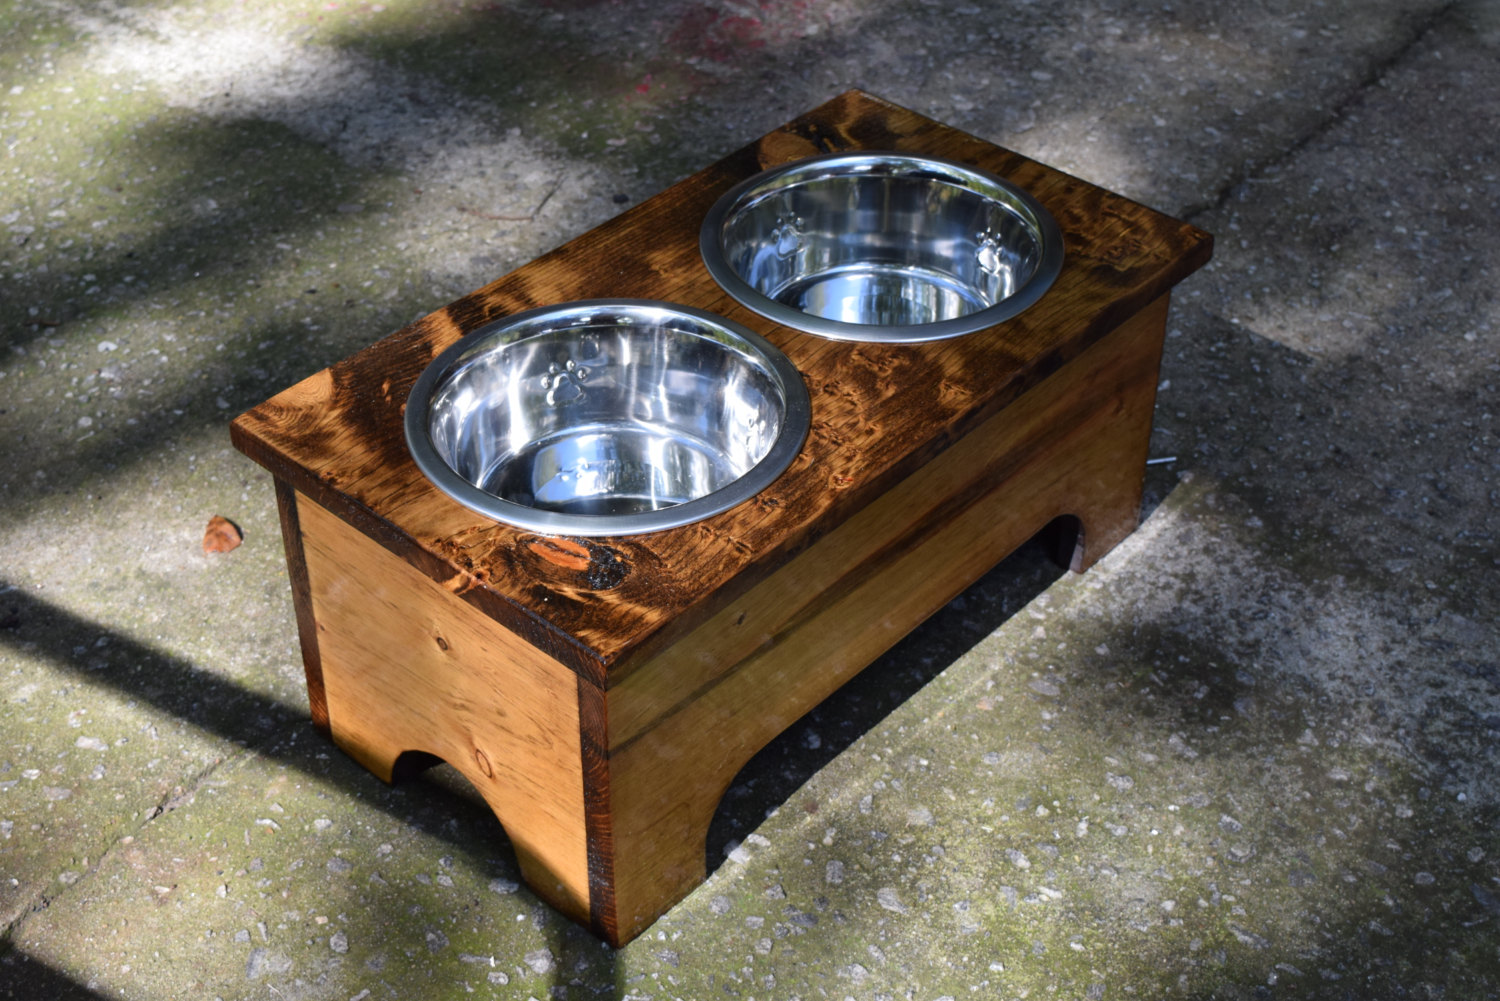 raised feeders next by trendy dogs holder style rustic pet of single for feeder modern image sta prev feeding home bowls howl bowl large dog